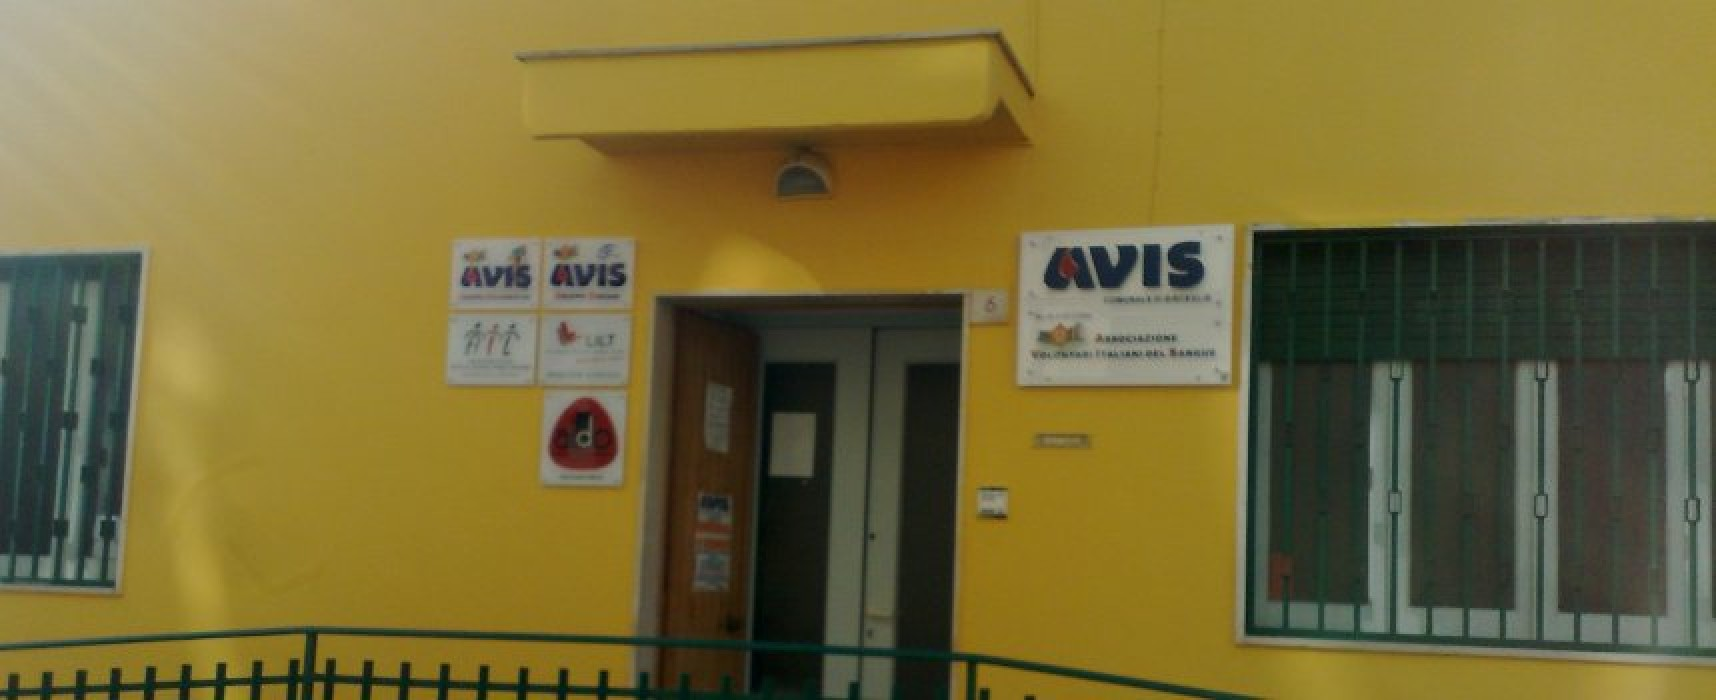 Avis in emergenza sangue, appello a donare per i gruppi 0-, 0+ e A+